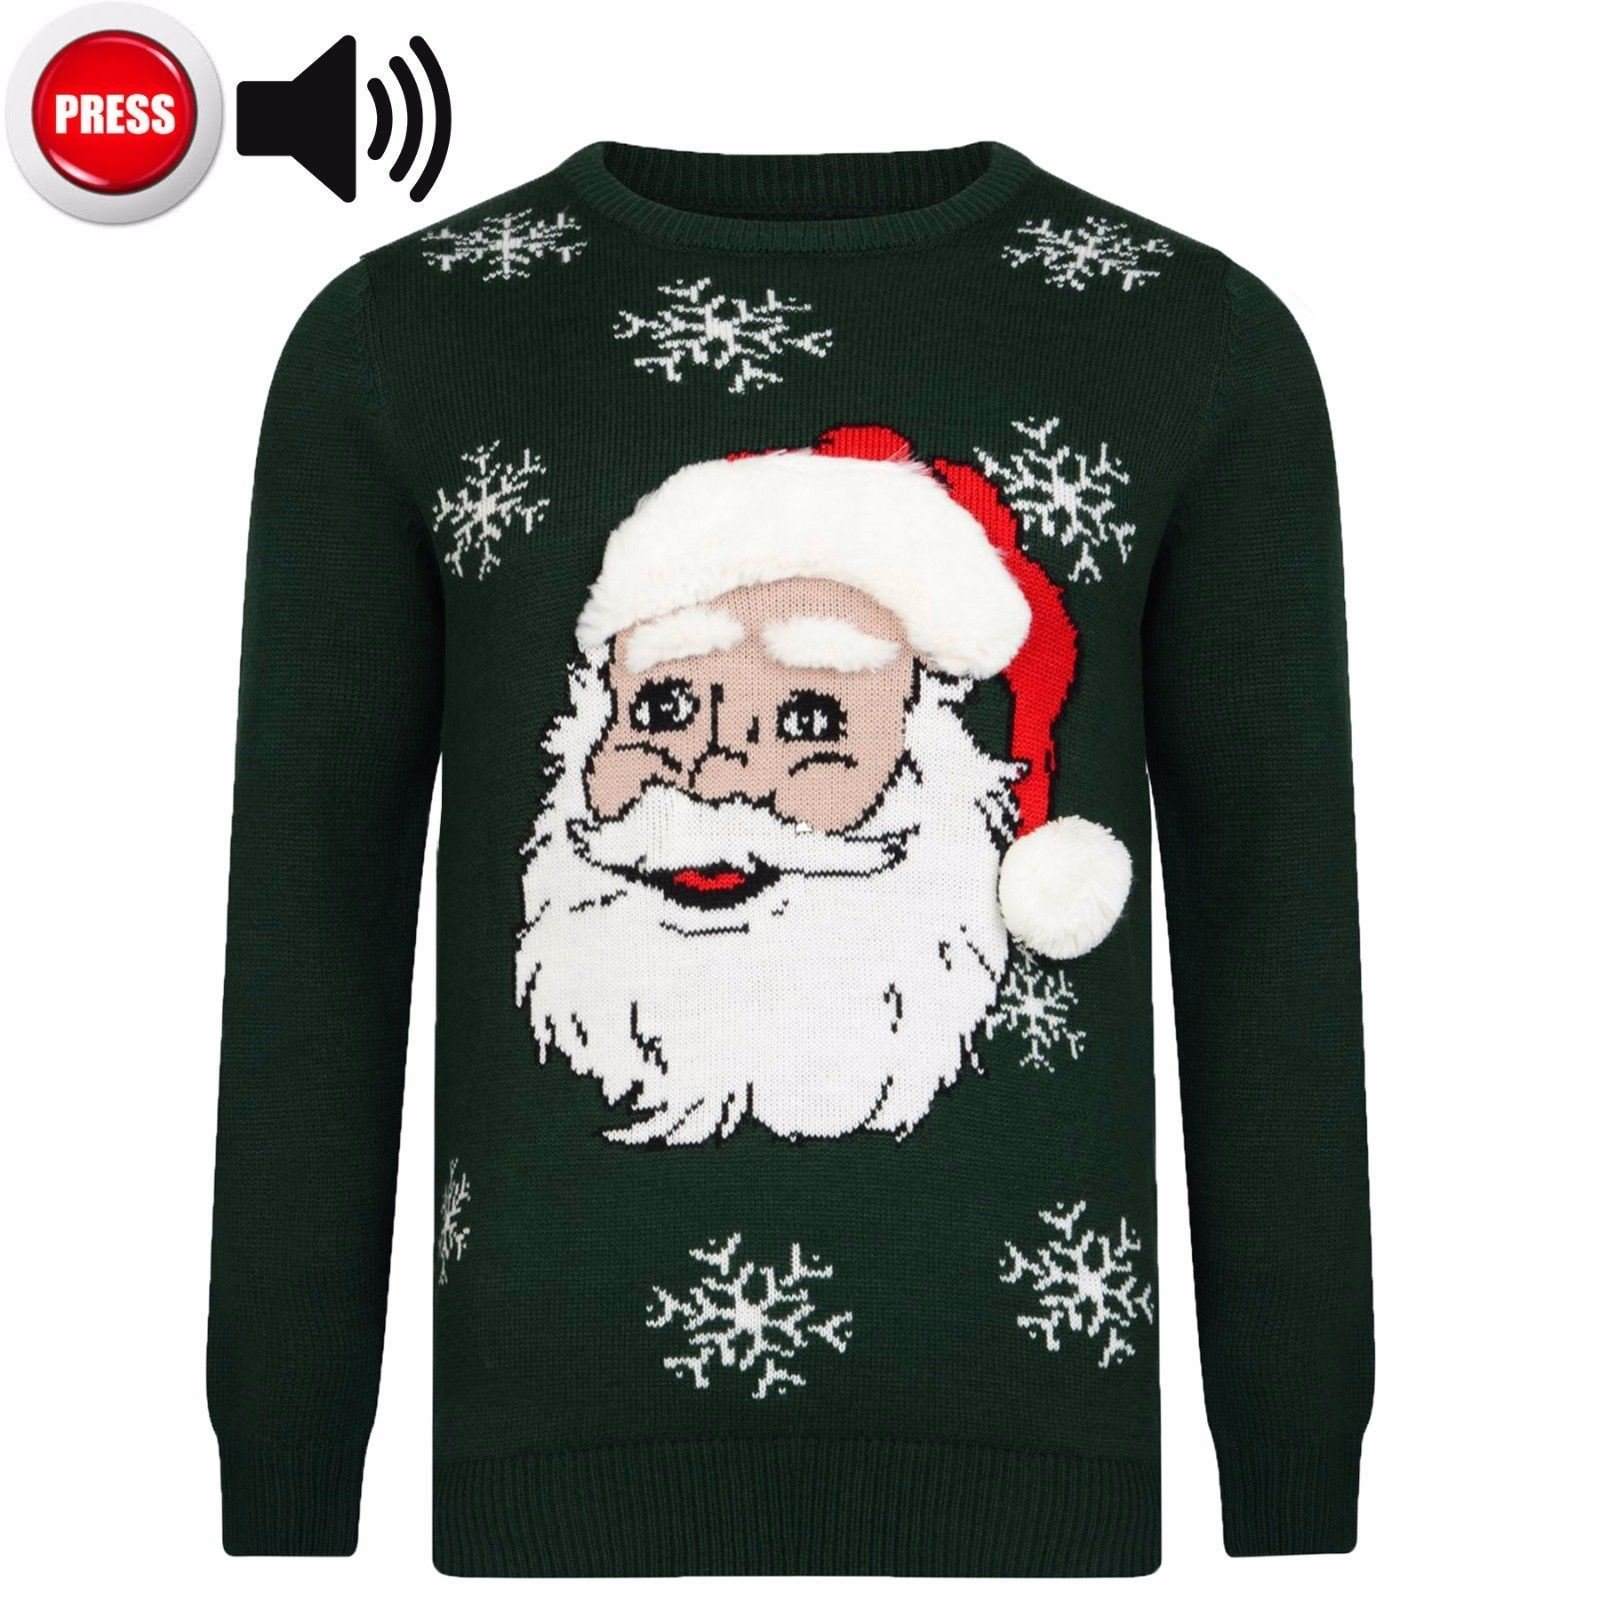 Mens Christmas Jumper Xmas Novelty Sweater Santa Elf Knitwear